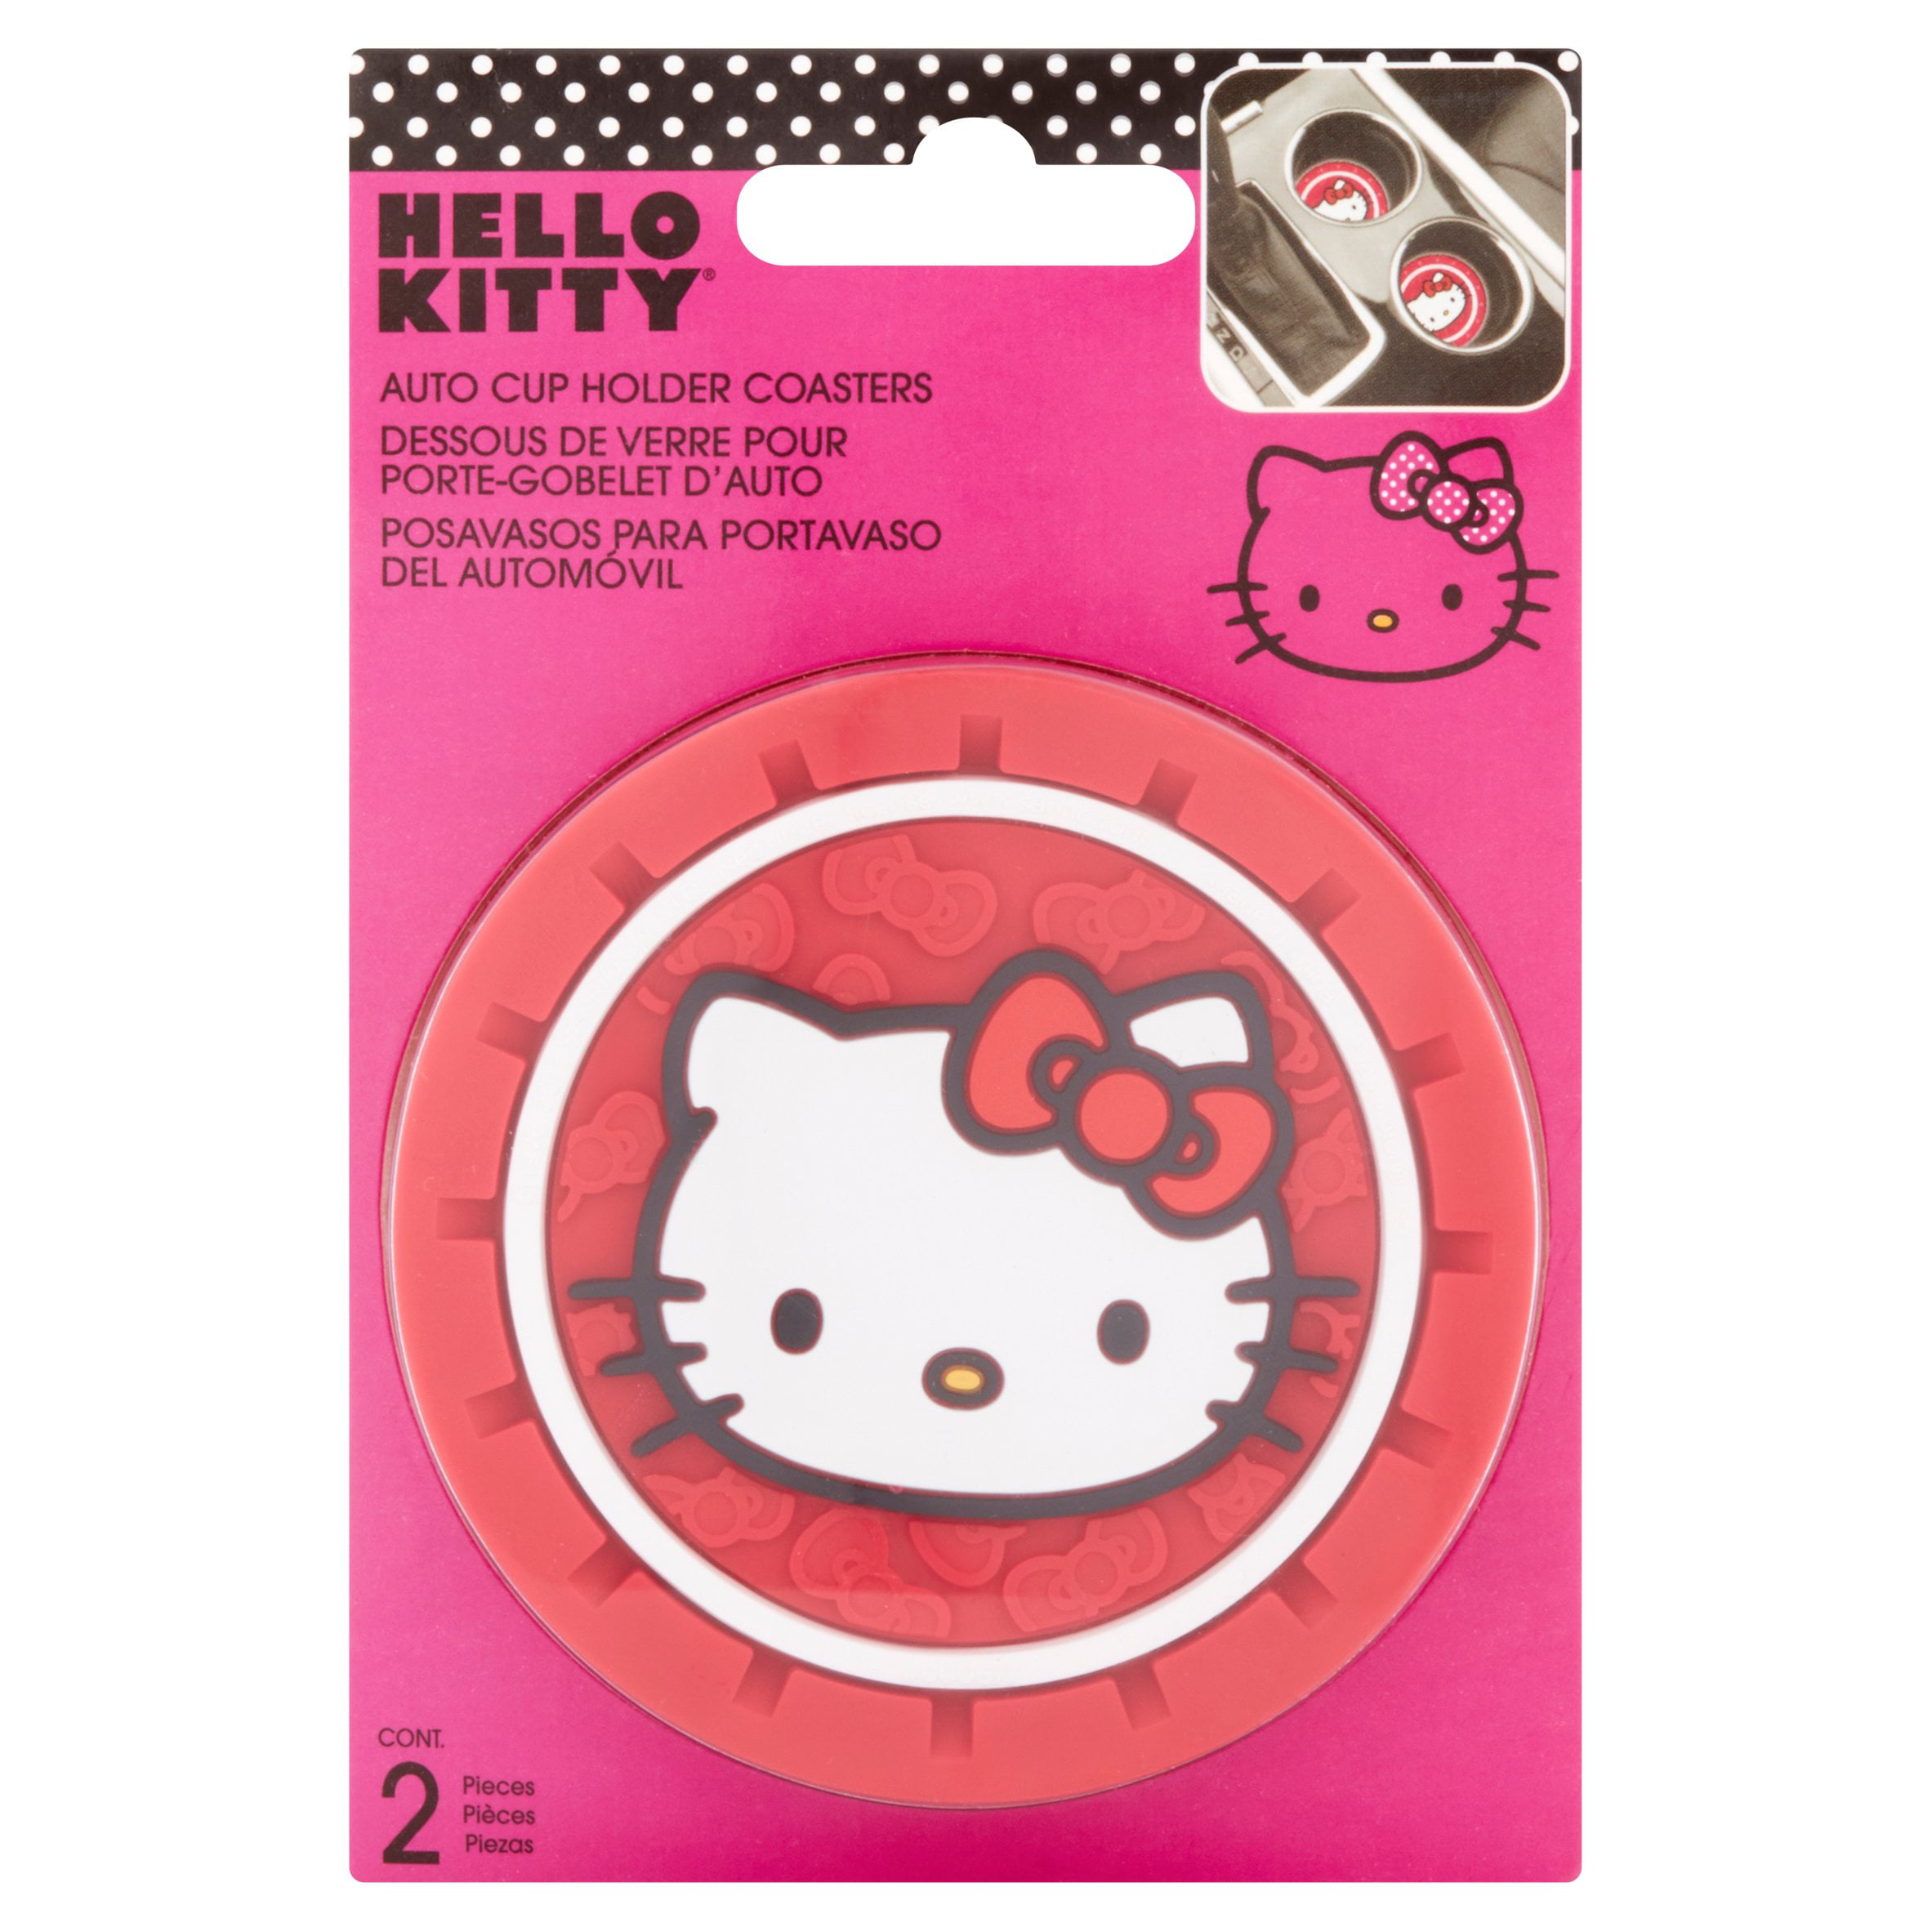 c4b73bff1 Hello Kitty Auto Cup Holder Coasters, 2 count - Walmart.com